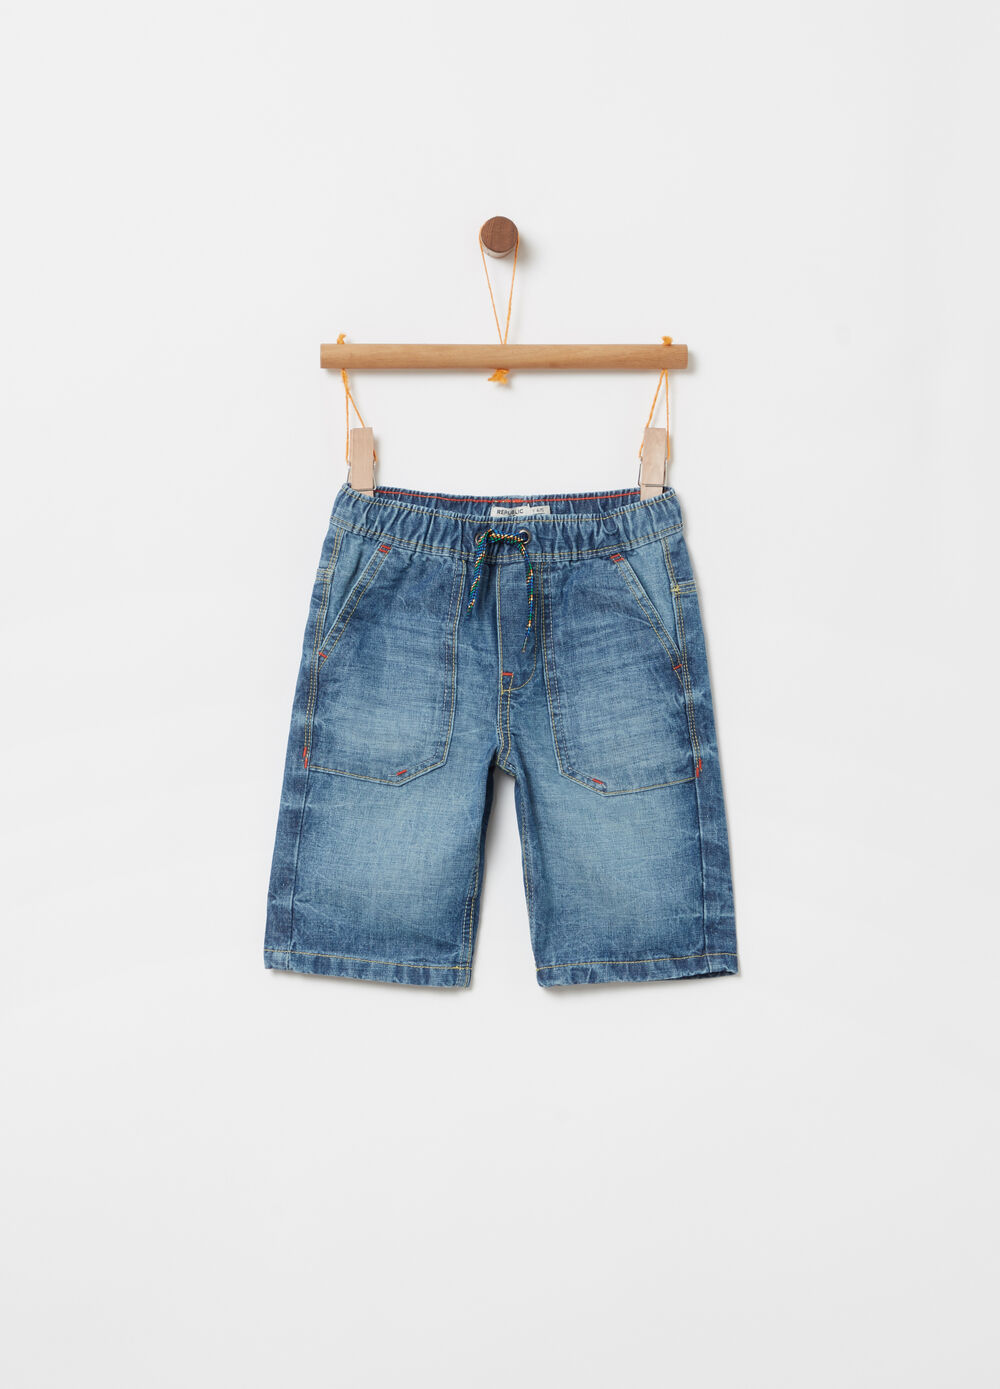 Washed denim shorts with functional pockets